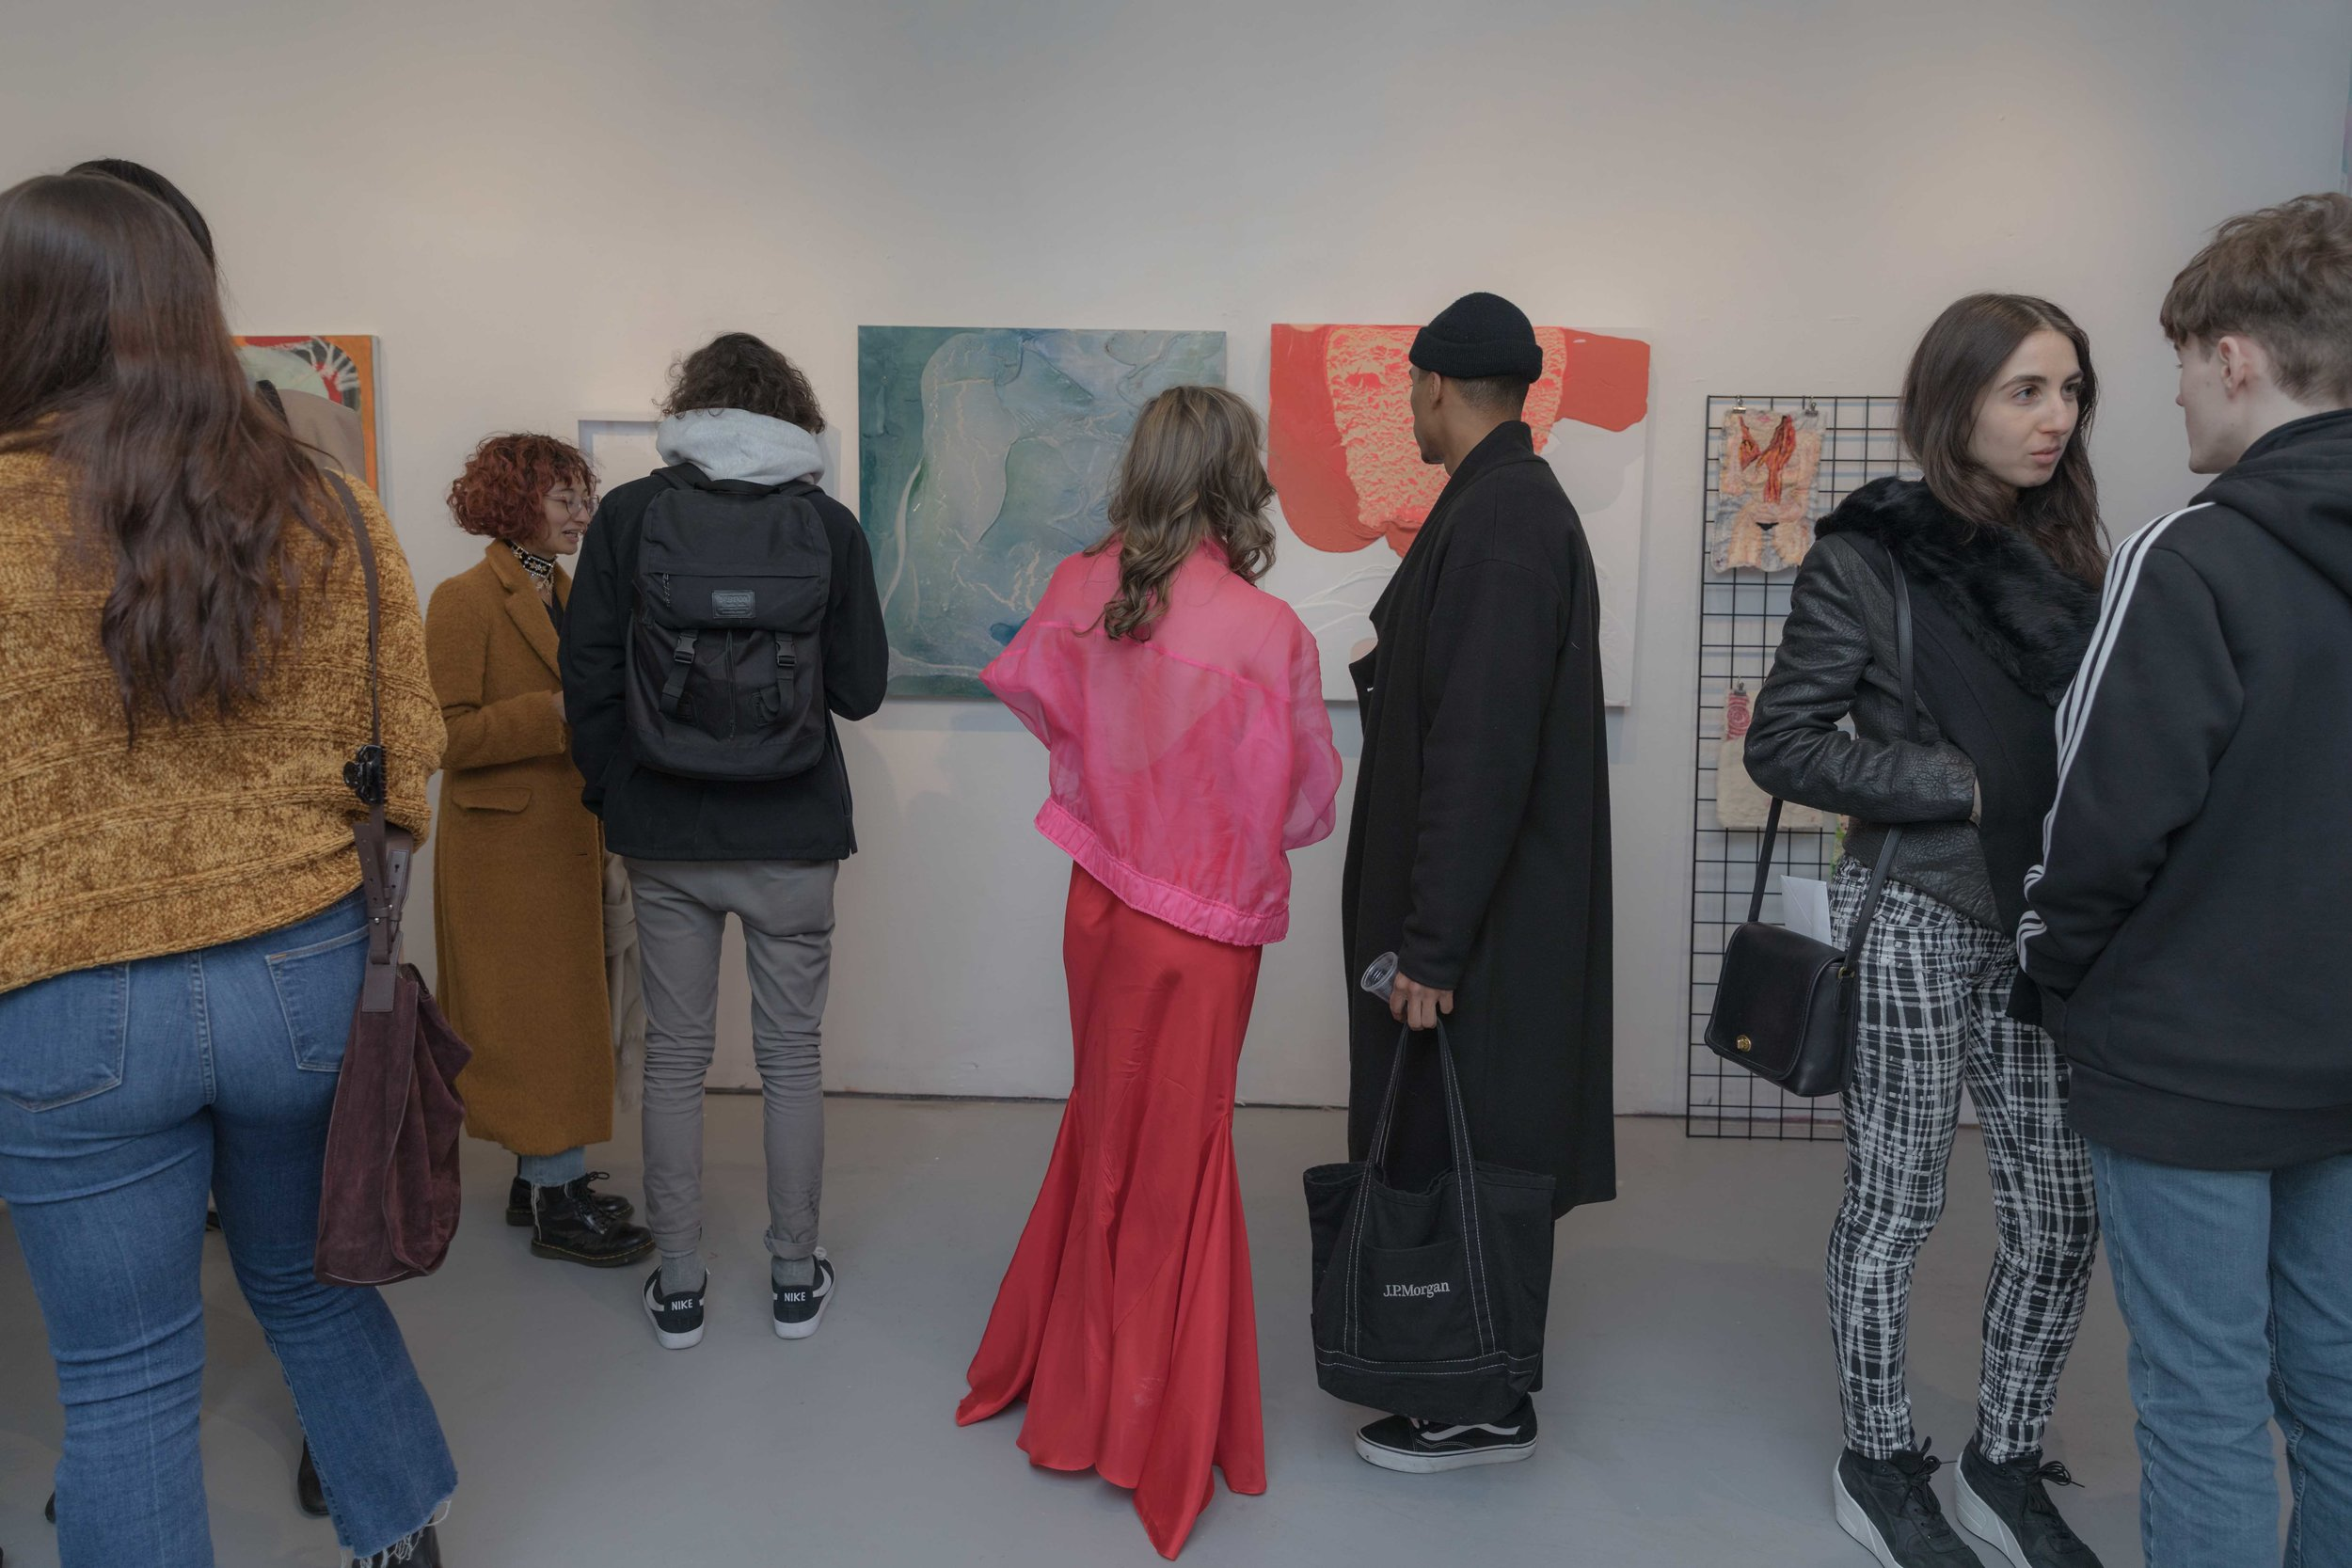 Gallery founder Beckie Warren and collector eyeing work by abstract artist Renee Phillips